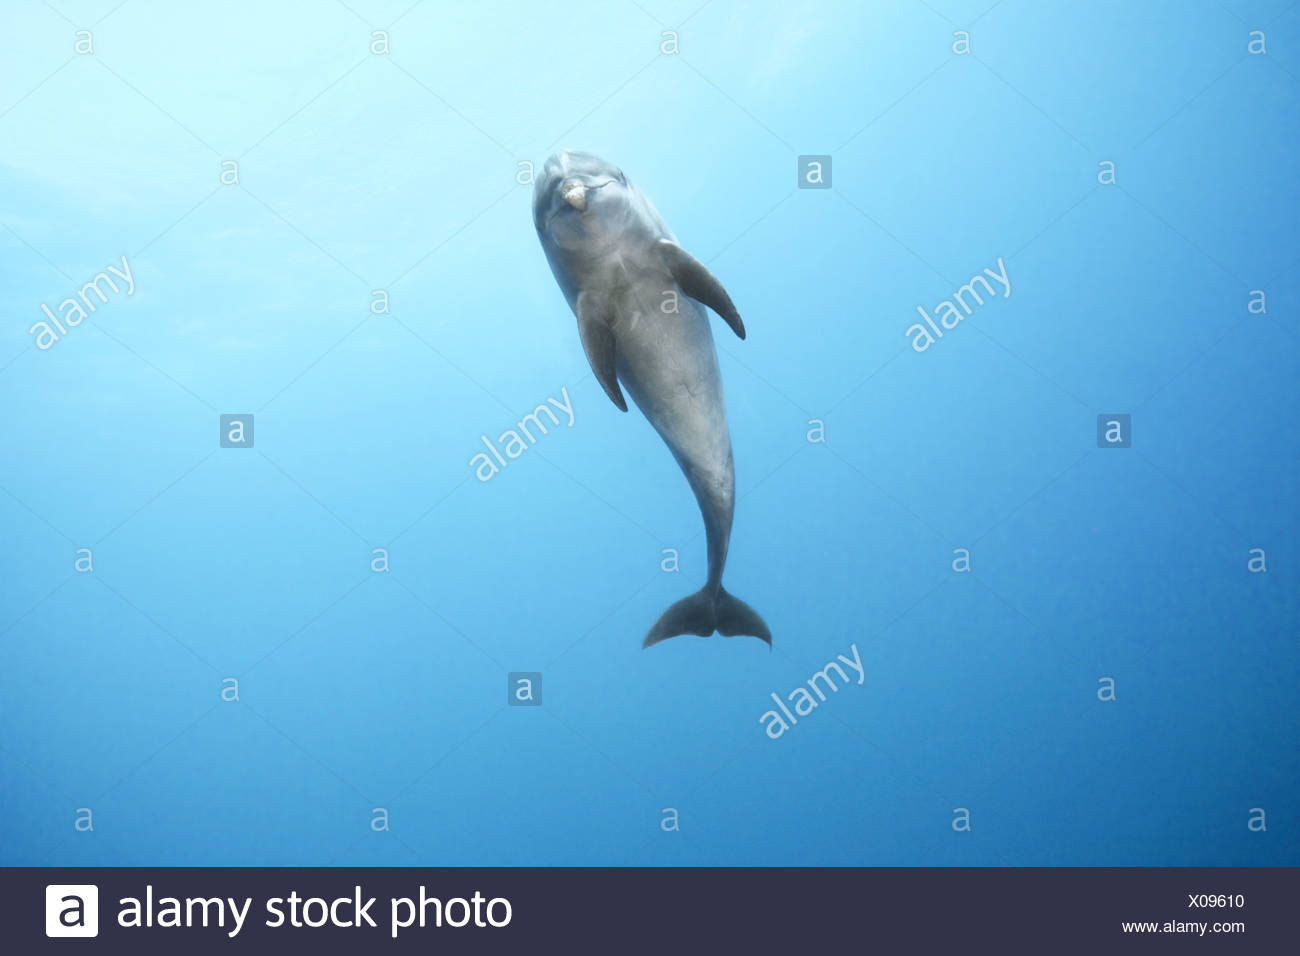 Bottlenose dolphin swimming in ocean - Stock Image